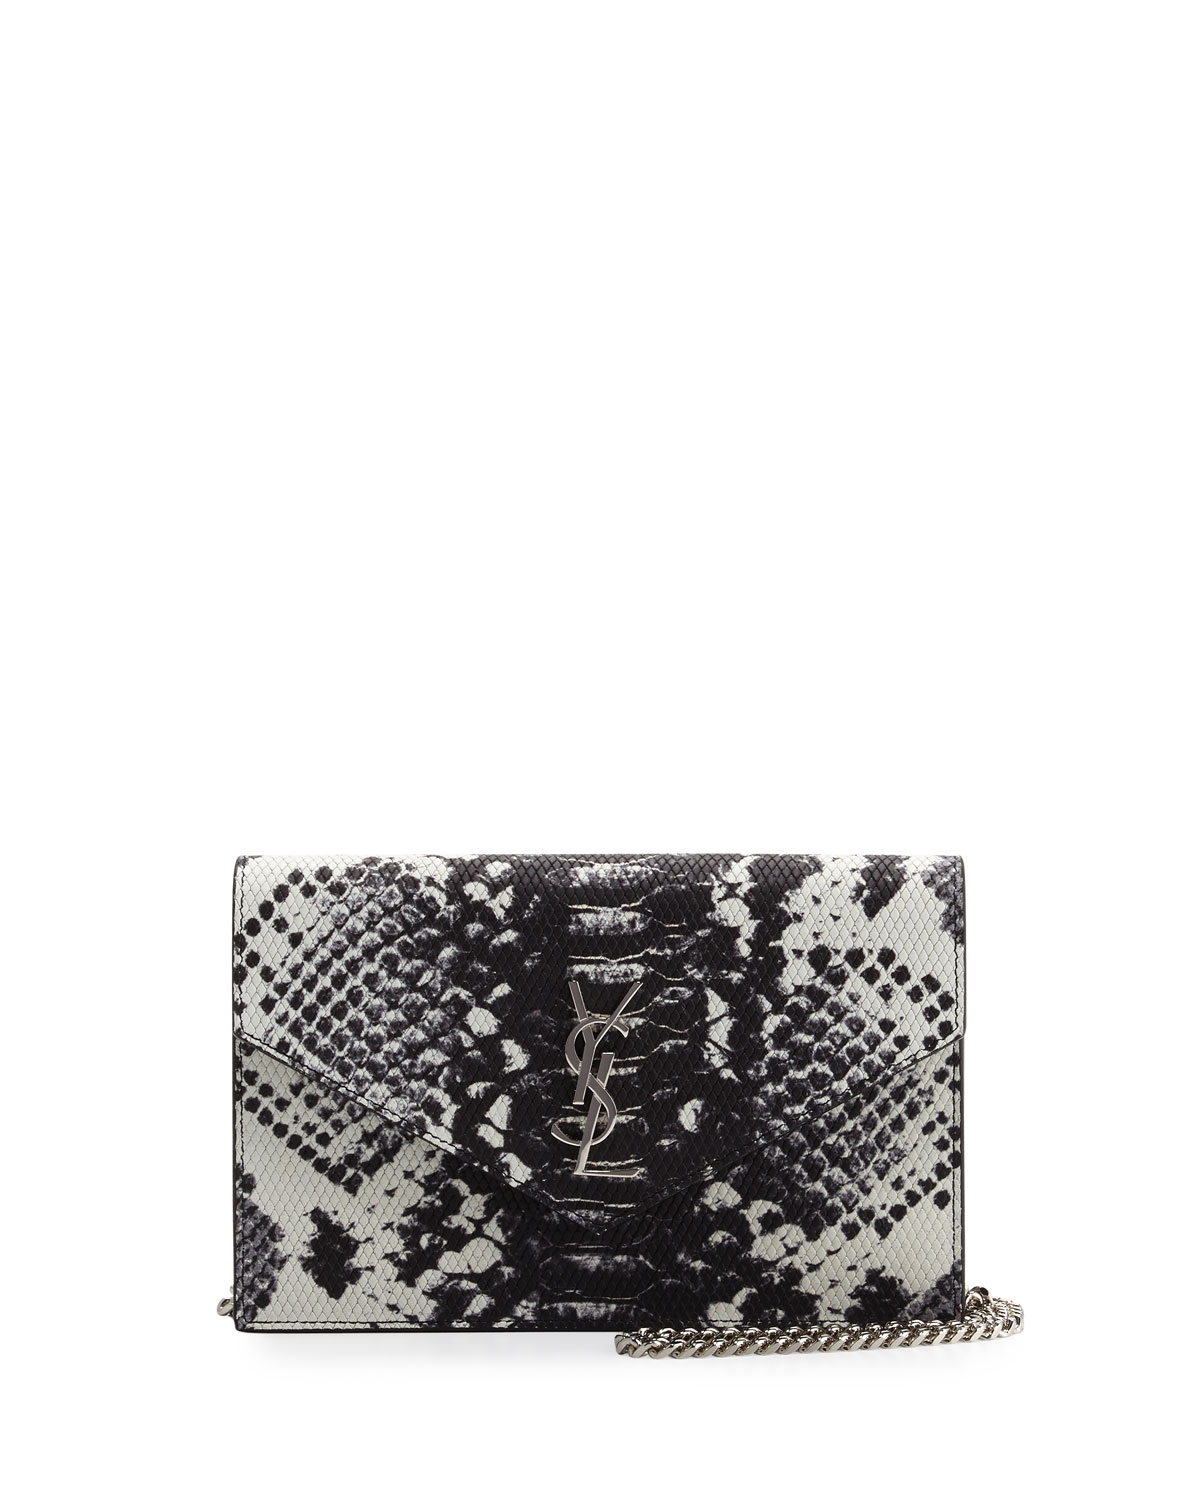 Yves Saint Laurent Monogram Leather Small Wallet-On-Chain, Black/White, Size: S